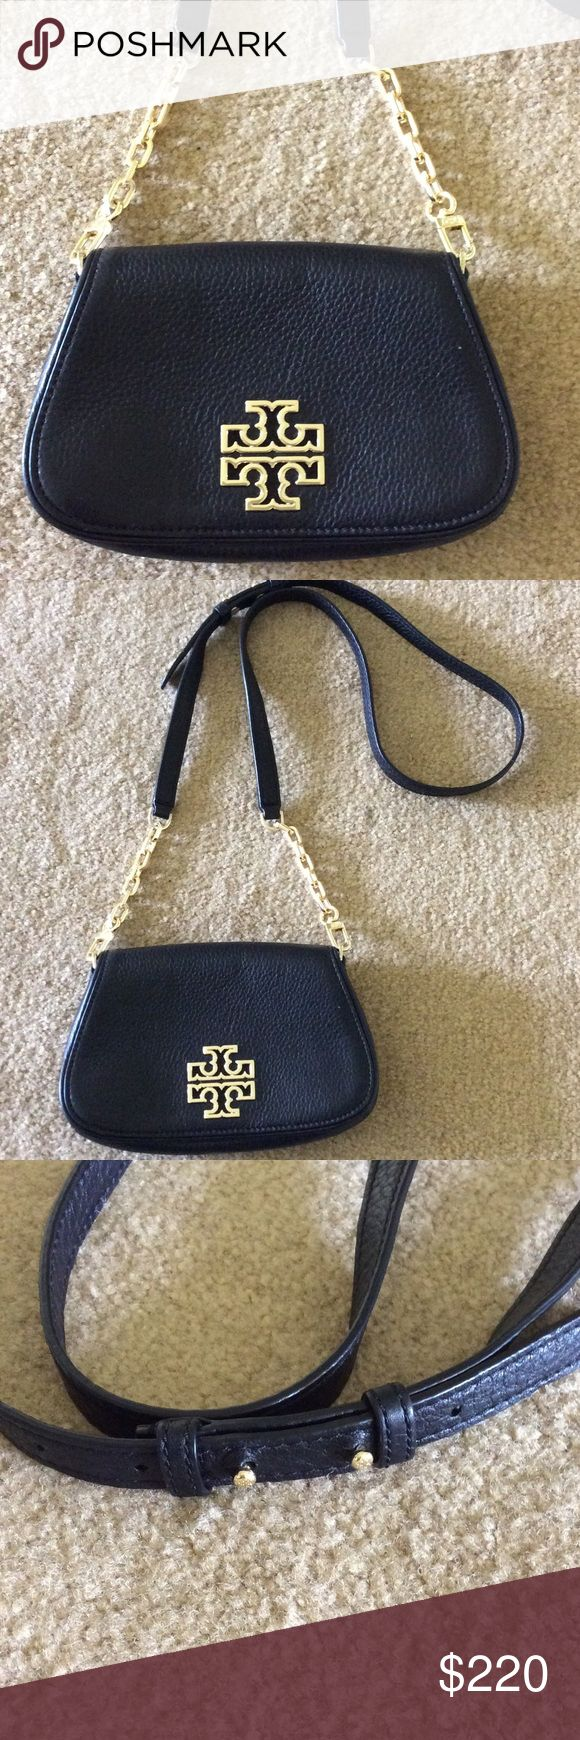 🌺Tory Burch Black Cross-body Bag🌺 🌺NWOT-received as a gift and just don't need🌺Soft pebbled leather🌺Three slots for credit cards🌺Fold over flap with magnetic snap closure🌺Removable cross-body strap to convert to clutch or wallet🌺Adjustable cross-body strap with 23 inch drop🌺Height 4.75inches and width 8 inches🌺Please note: I try to price my items very fairly for their condition. I wont respond to lowball offers and I don't trade. Please don't ask me to model. If you need additional…